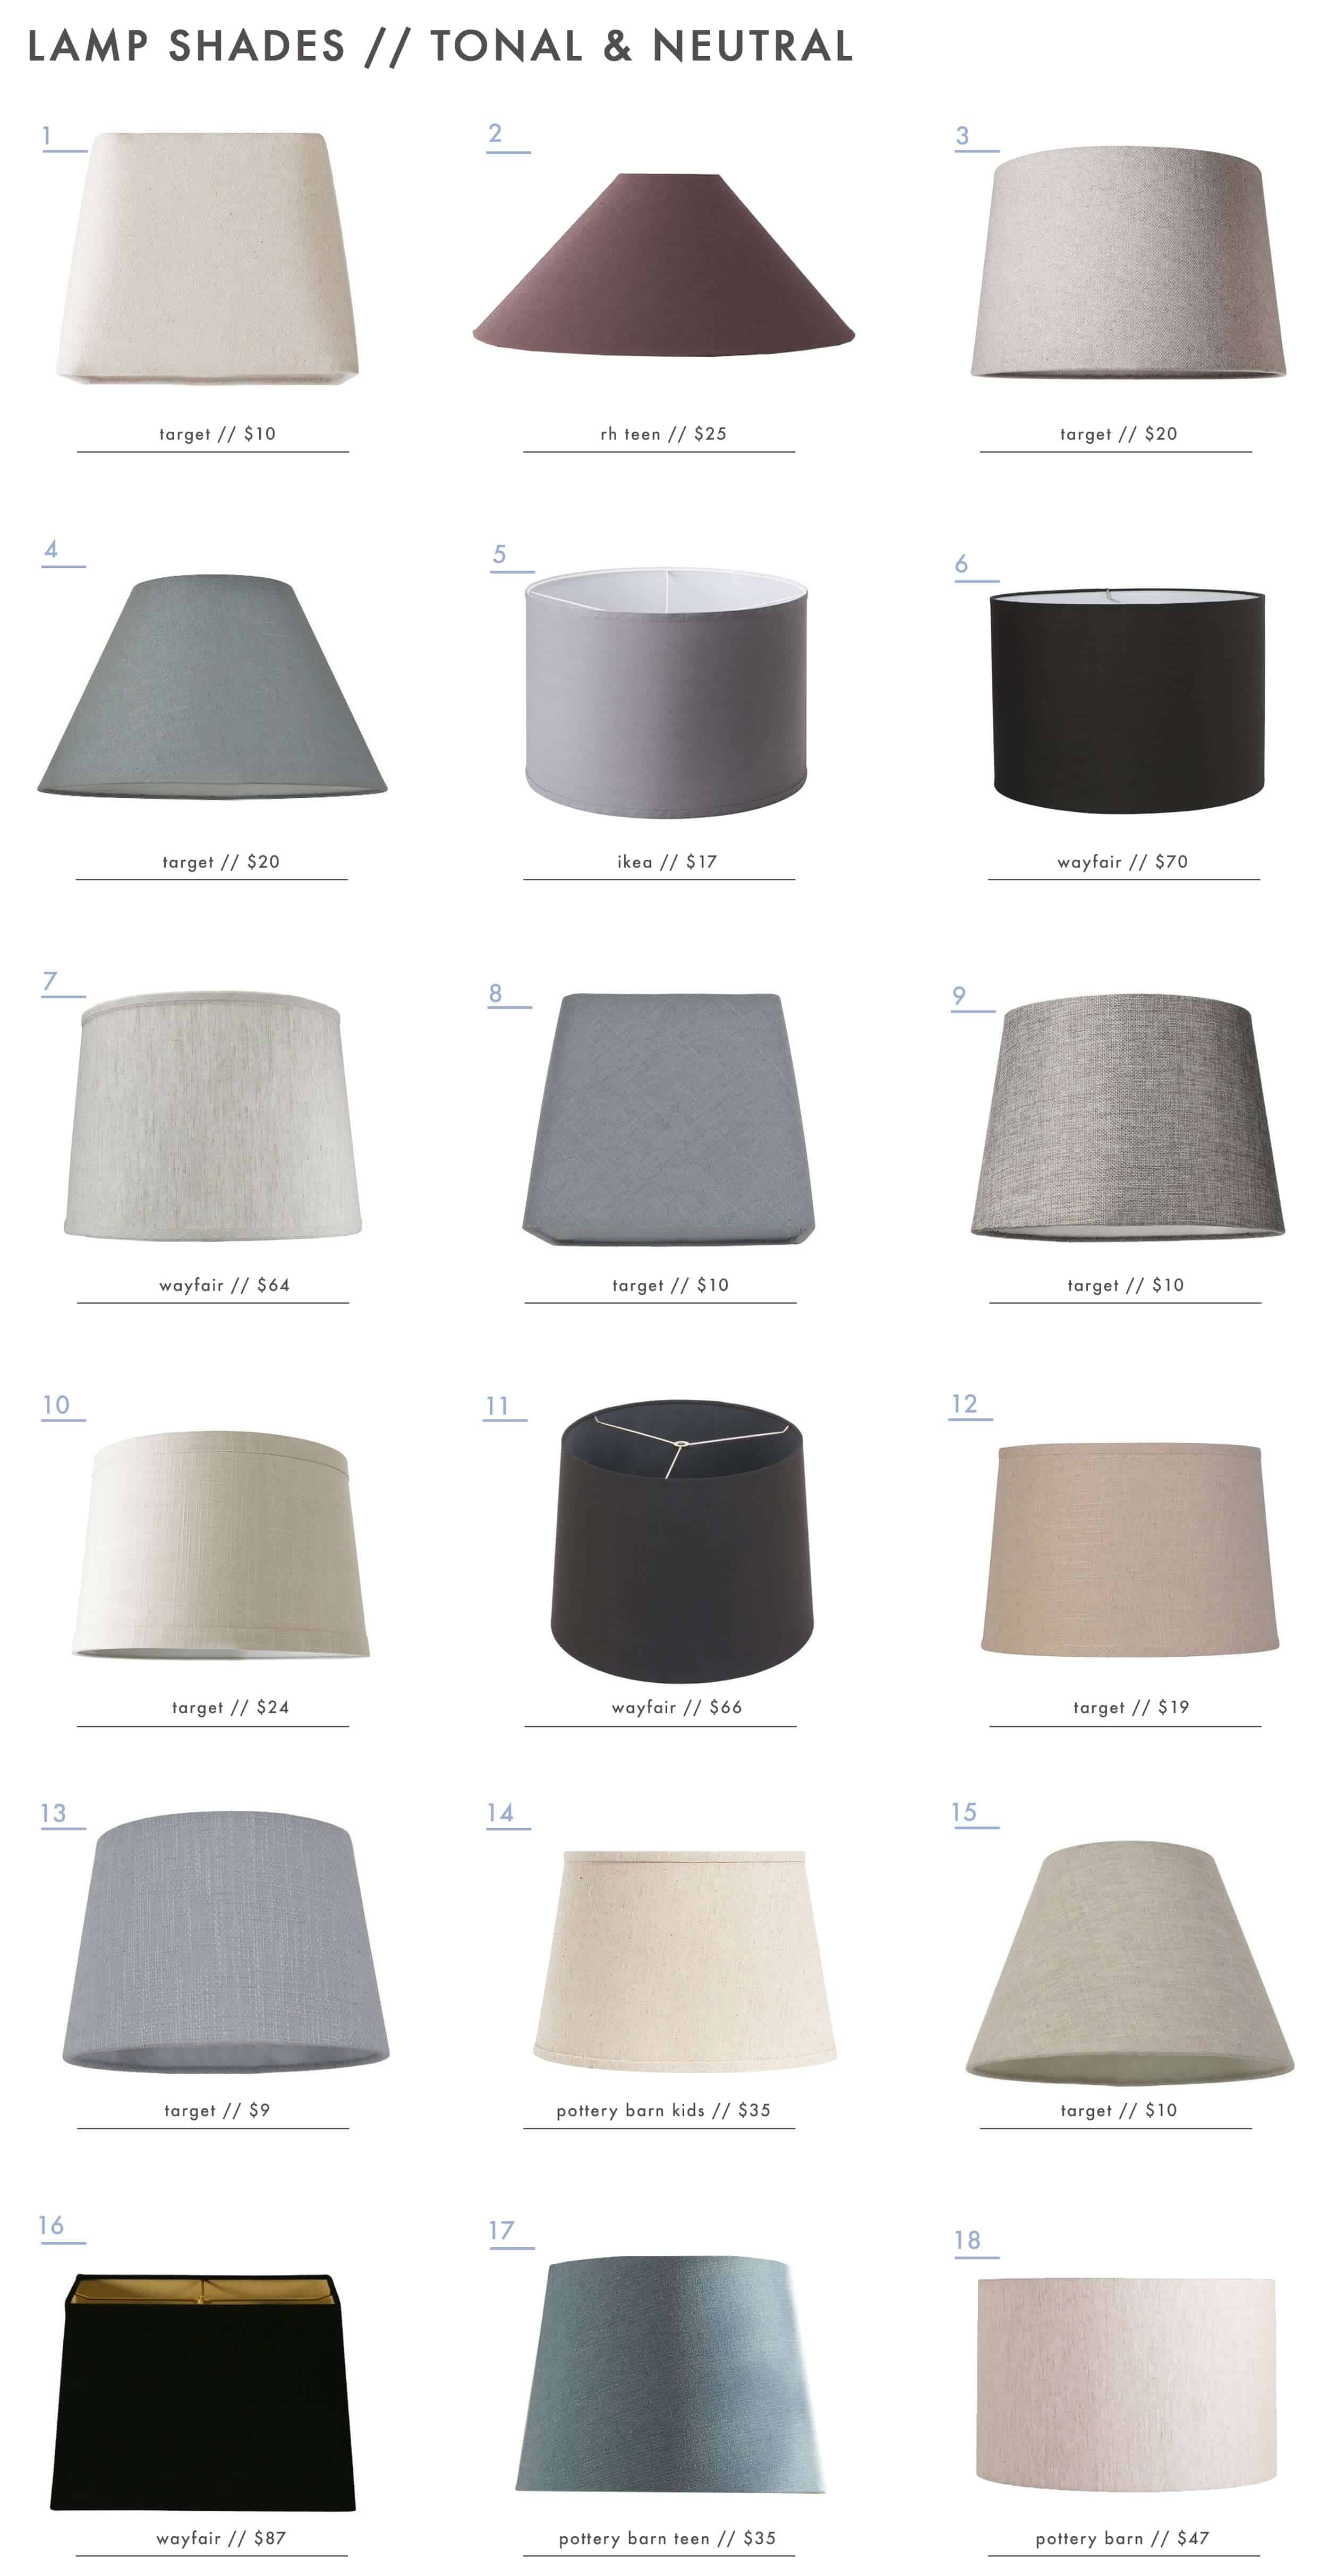 Emily-Henderson_Textured_Patterned_Colorful_Lamp-Shades_Tonal_Neutral